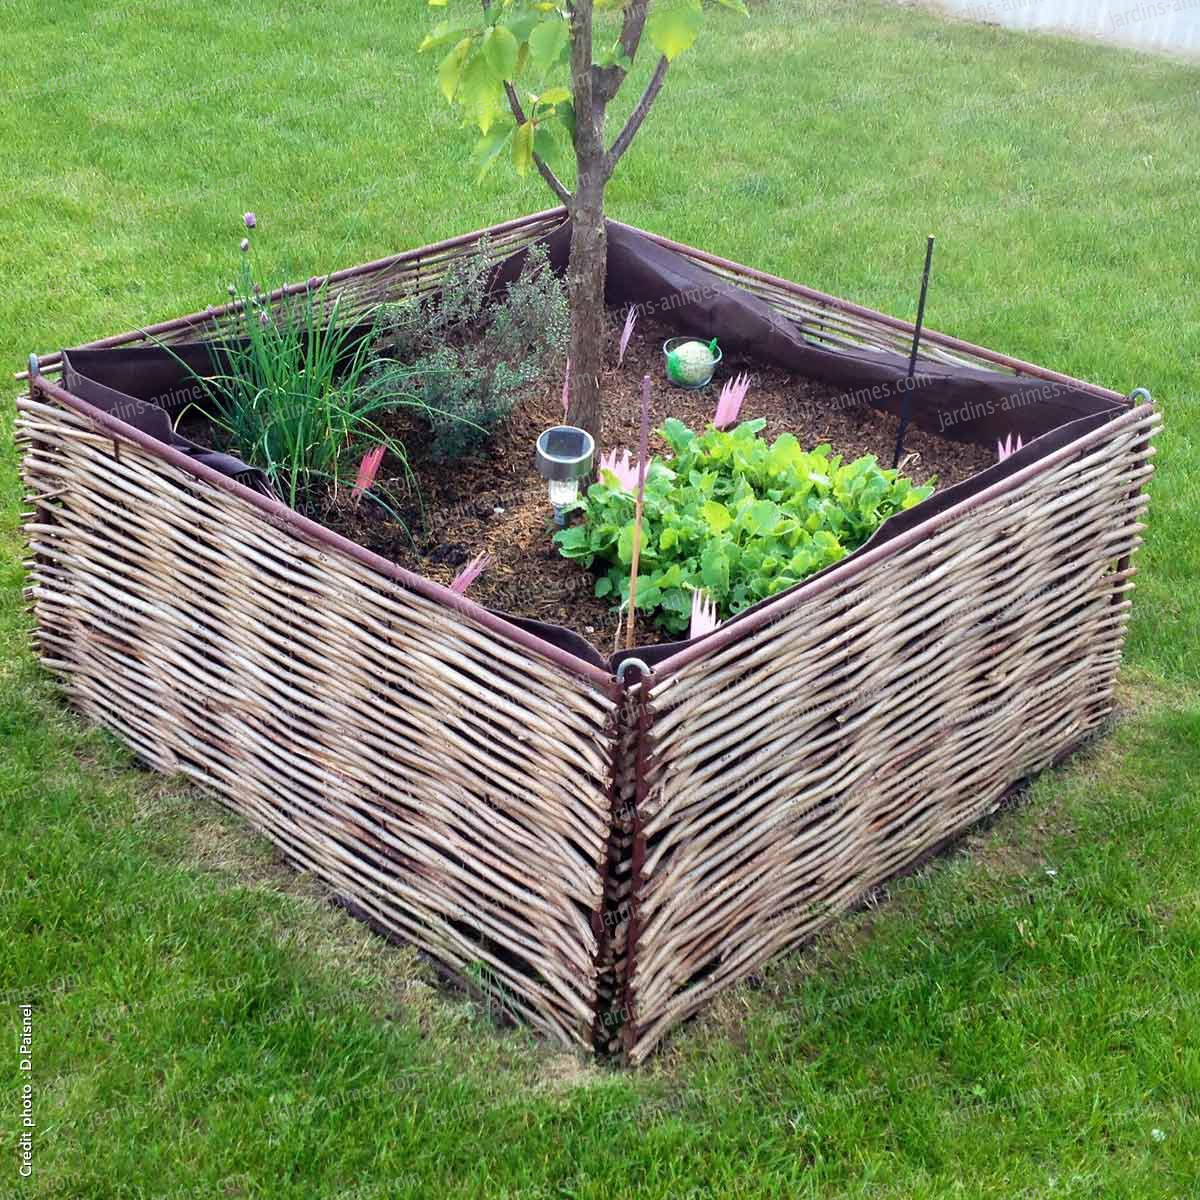 Kit carr potager 90x90x45cm 4 bordures 1 sac 2 bandes bidim 4 fixations u carr potager for Potager en carre prix